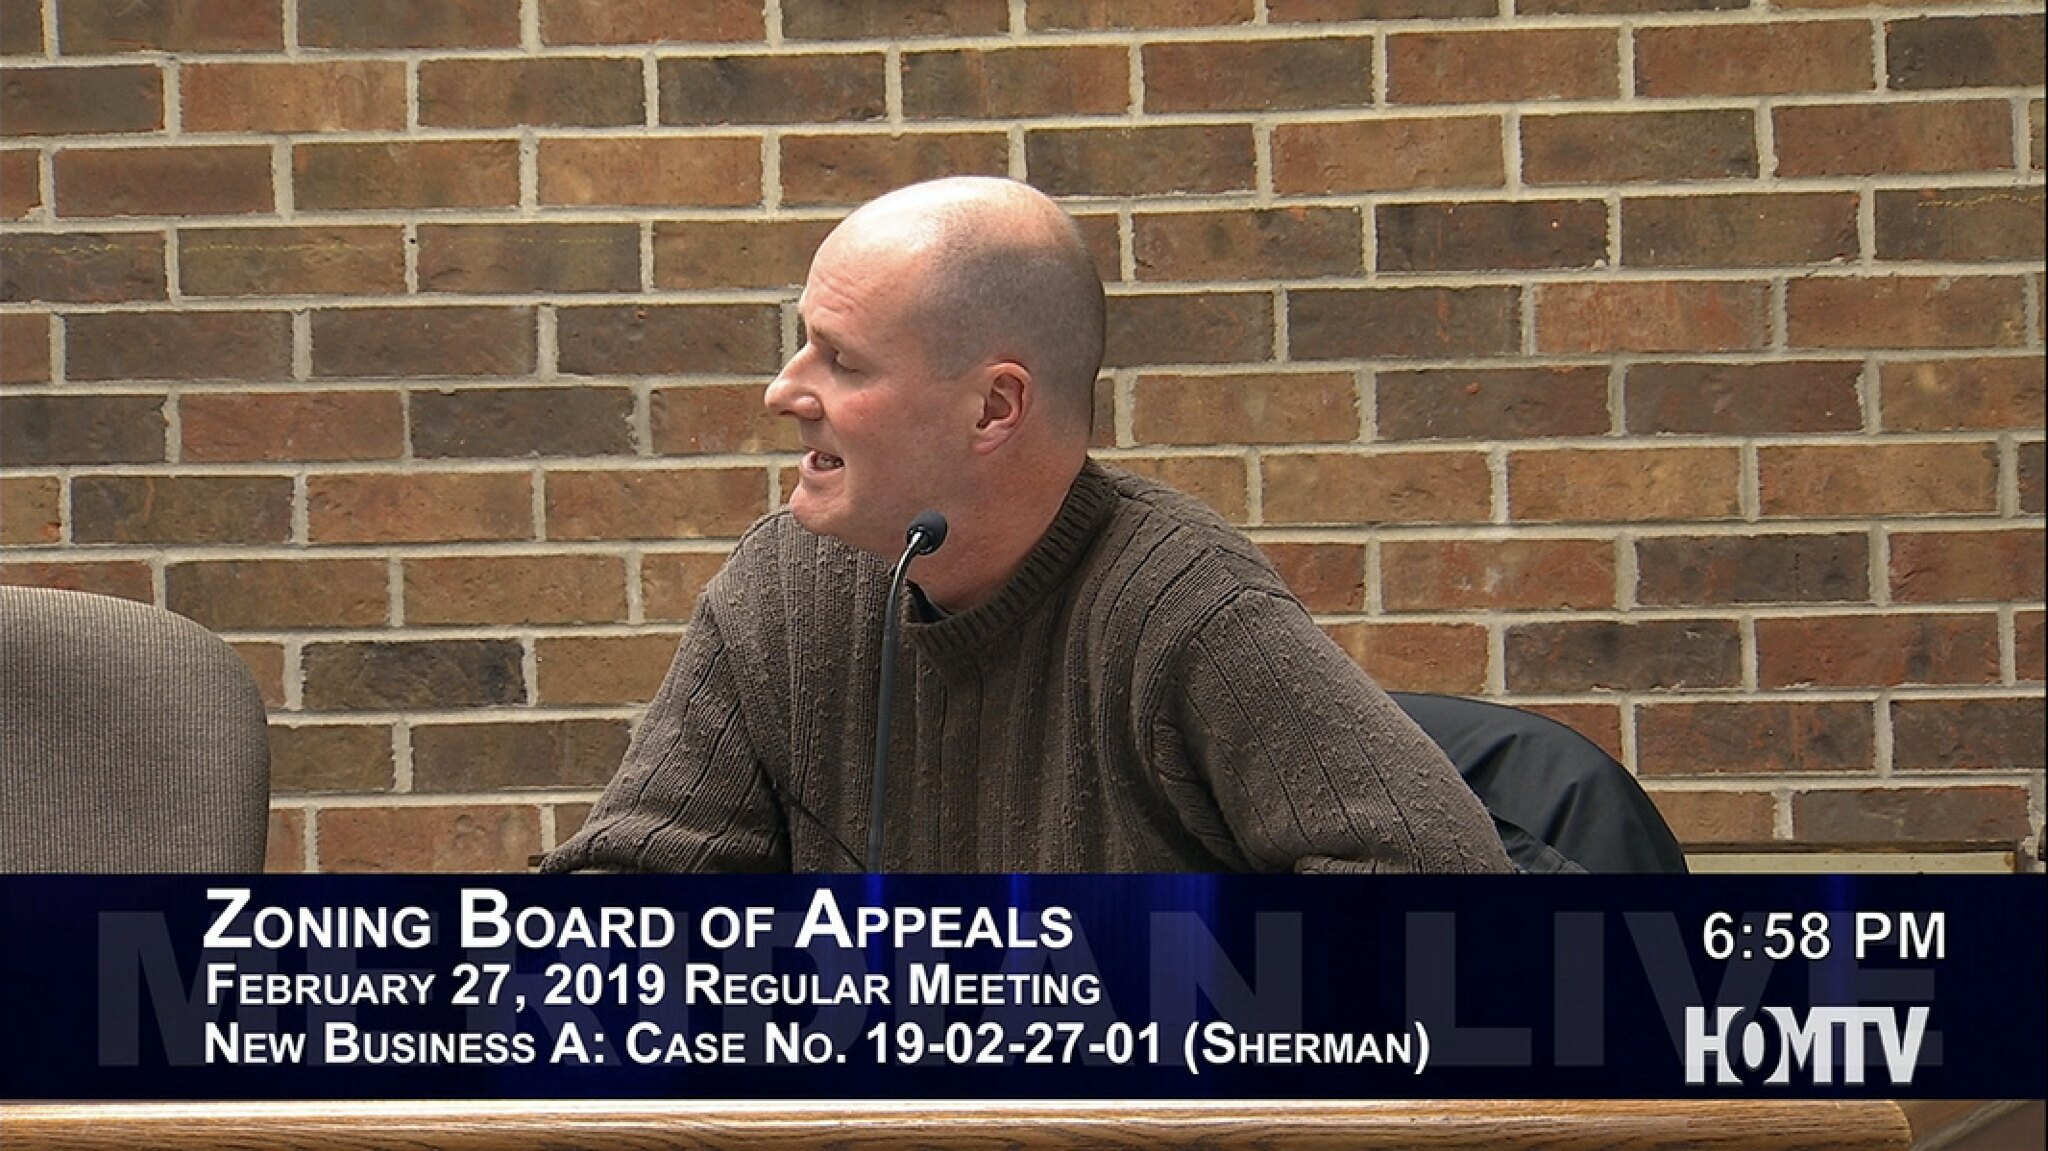 Zoning Board of Appeals Denies Variance Request at Feb. 27 Meeting